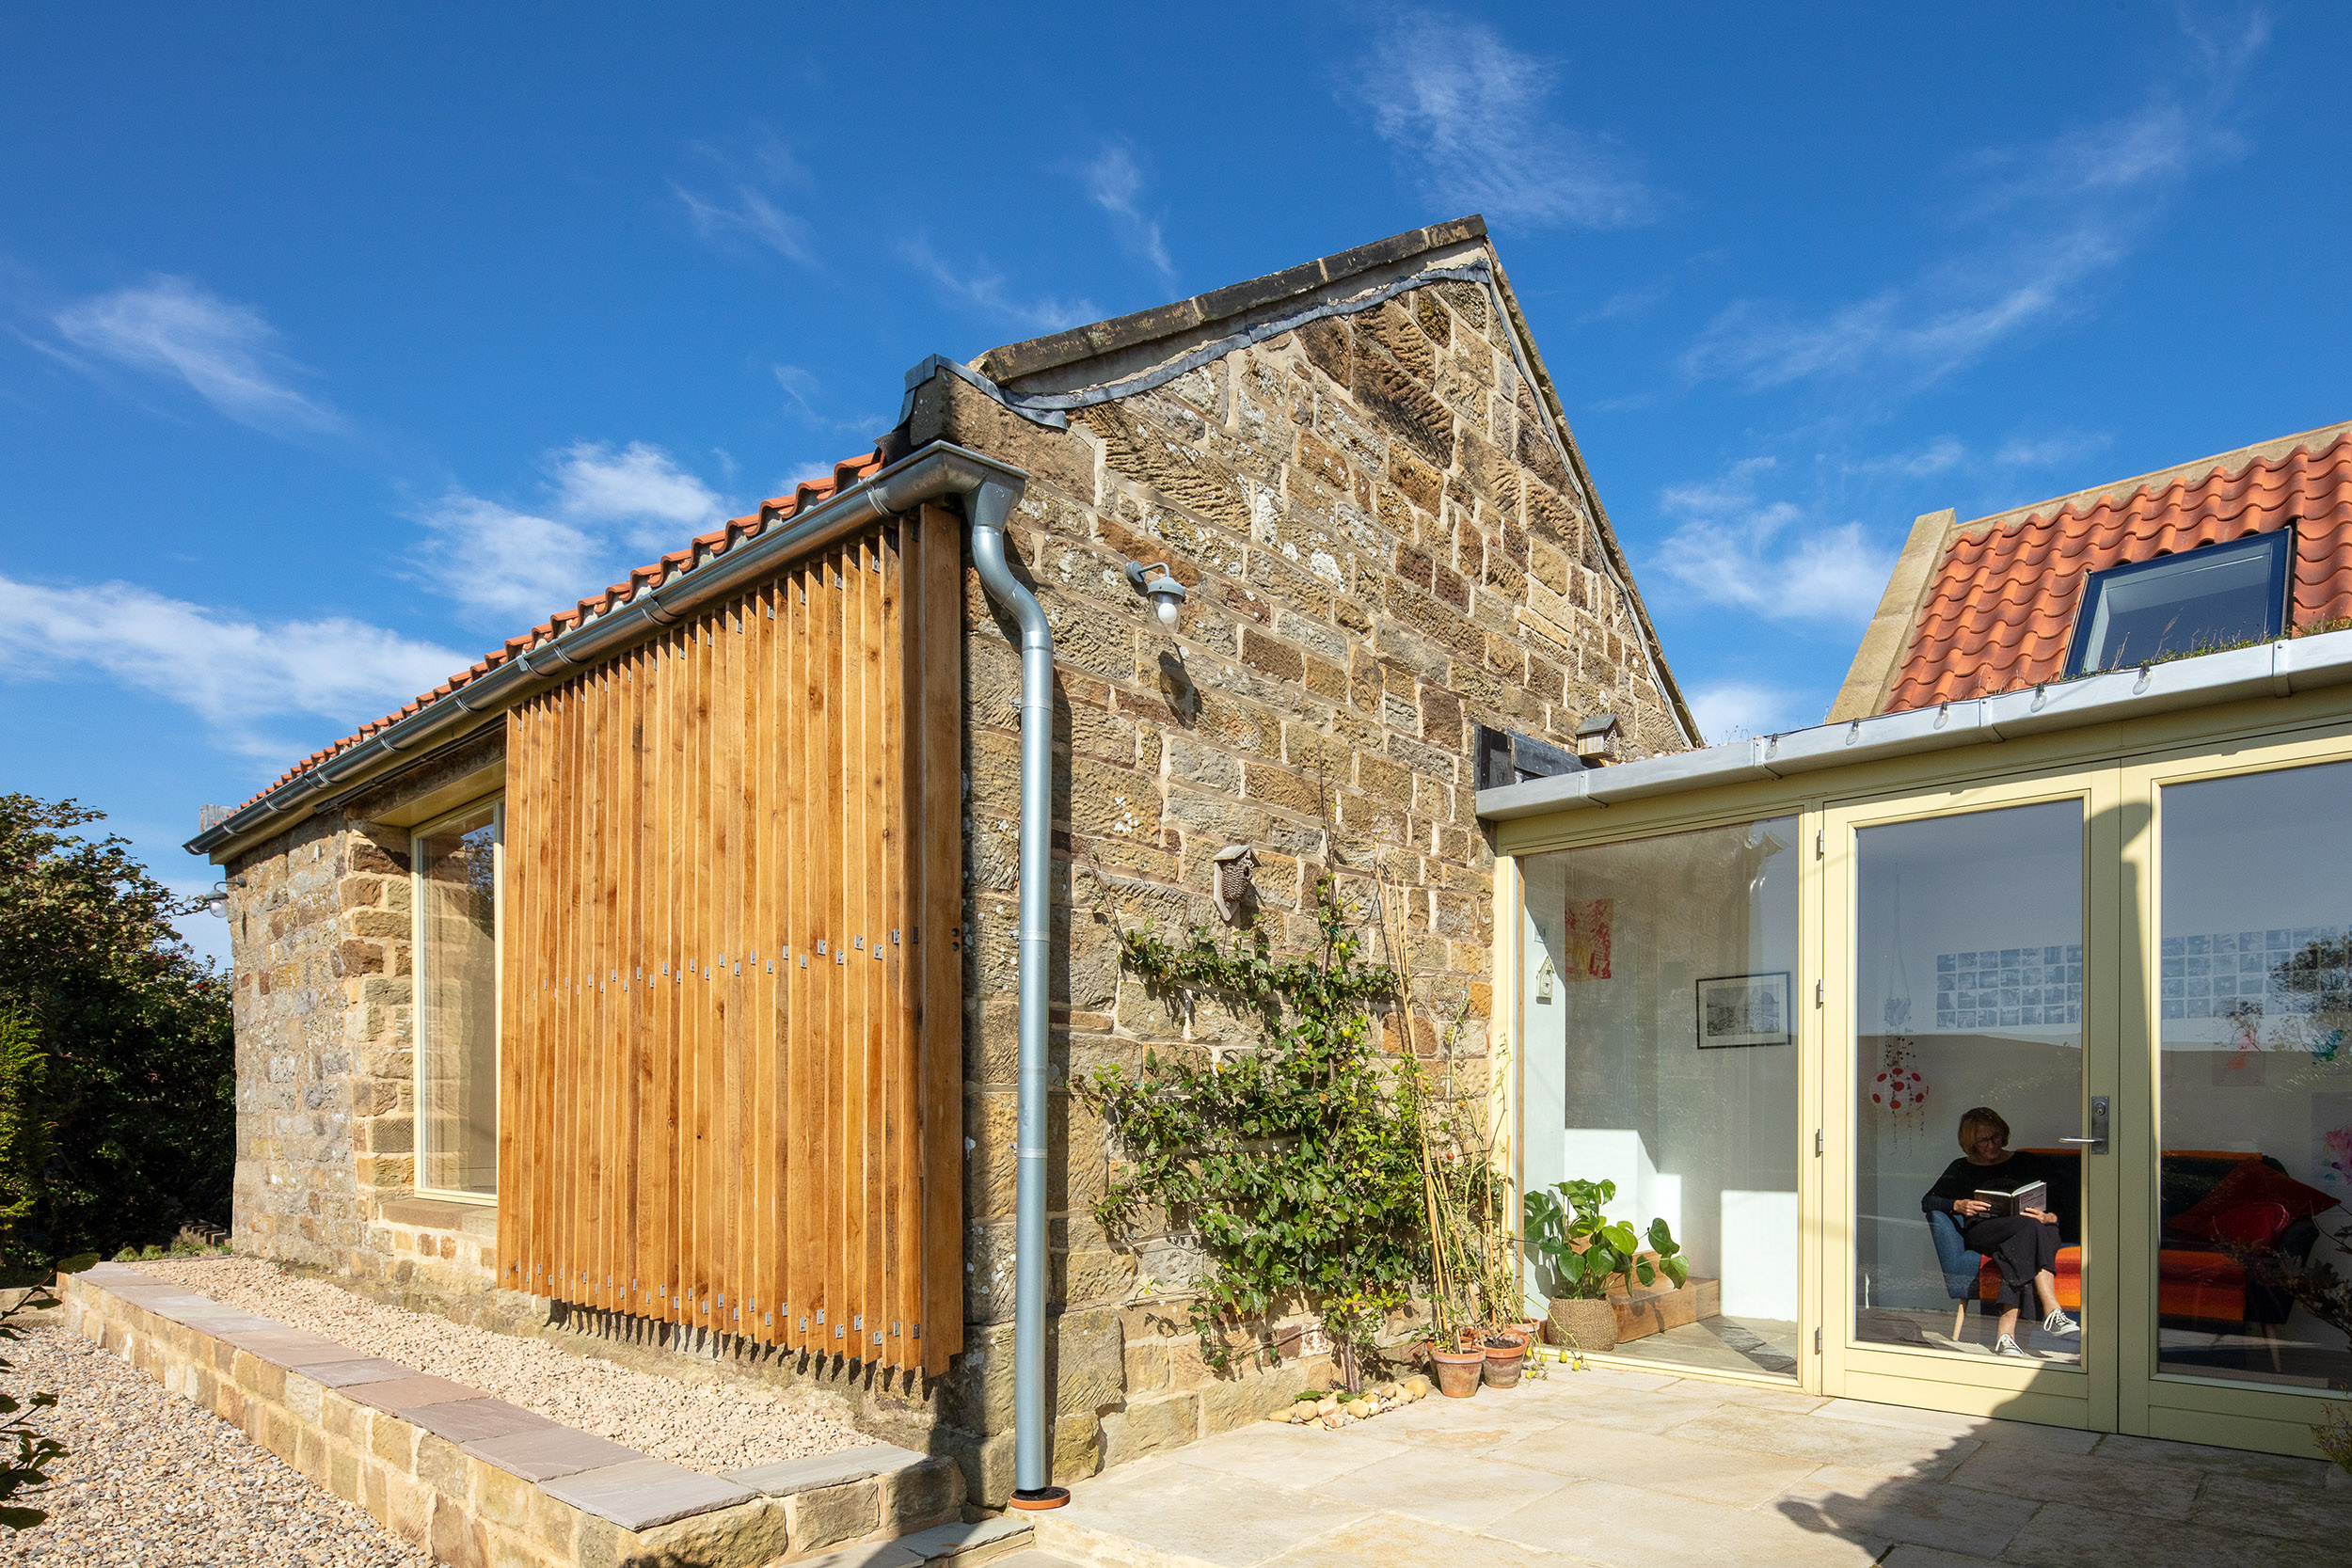 harper-perry-architects-housing-barn-westerdale-north-yorkshire-rennovation-link